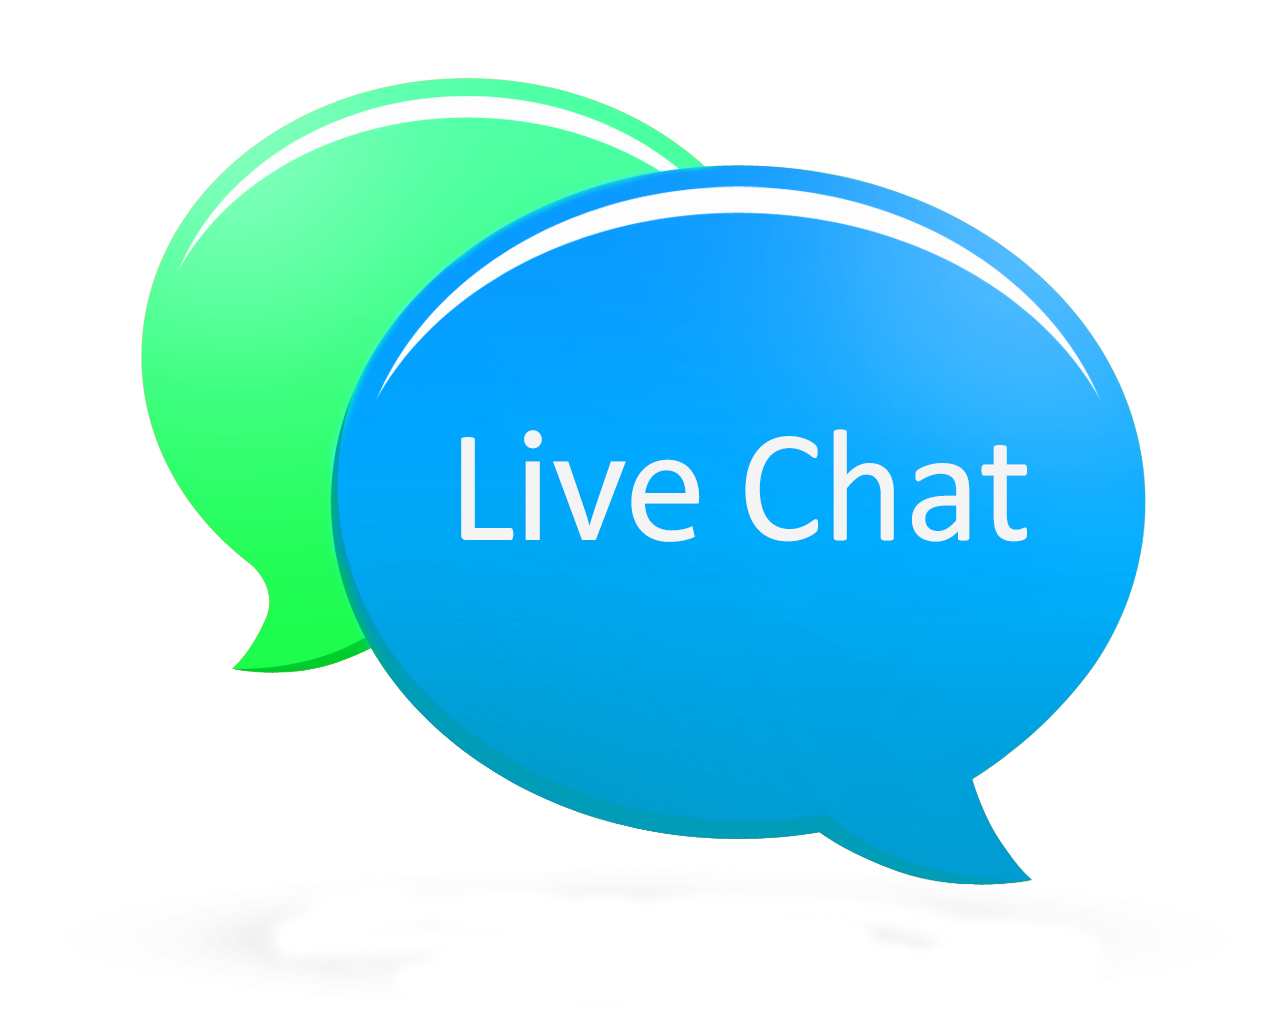 live chat room in australia live chat images 19991